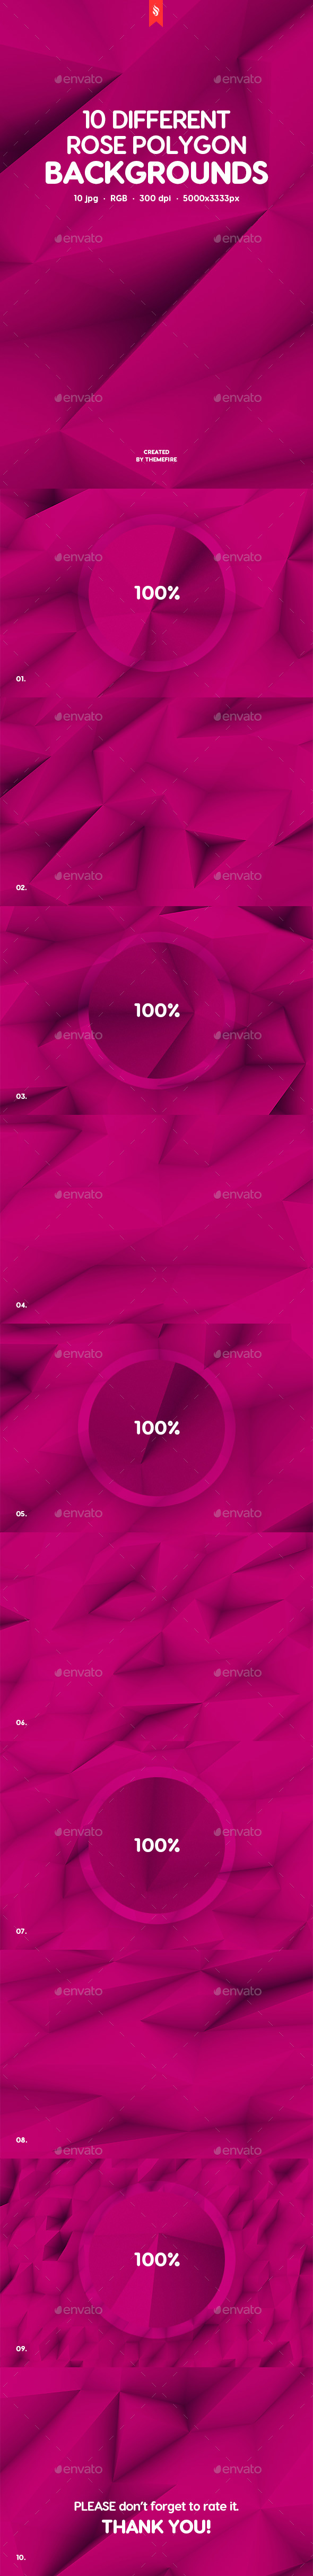 Realistic Rose Polygon Backgrounds